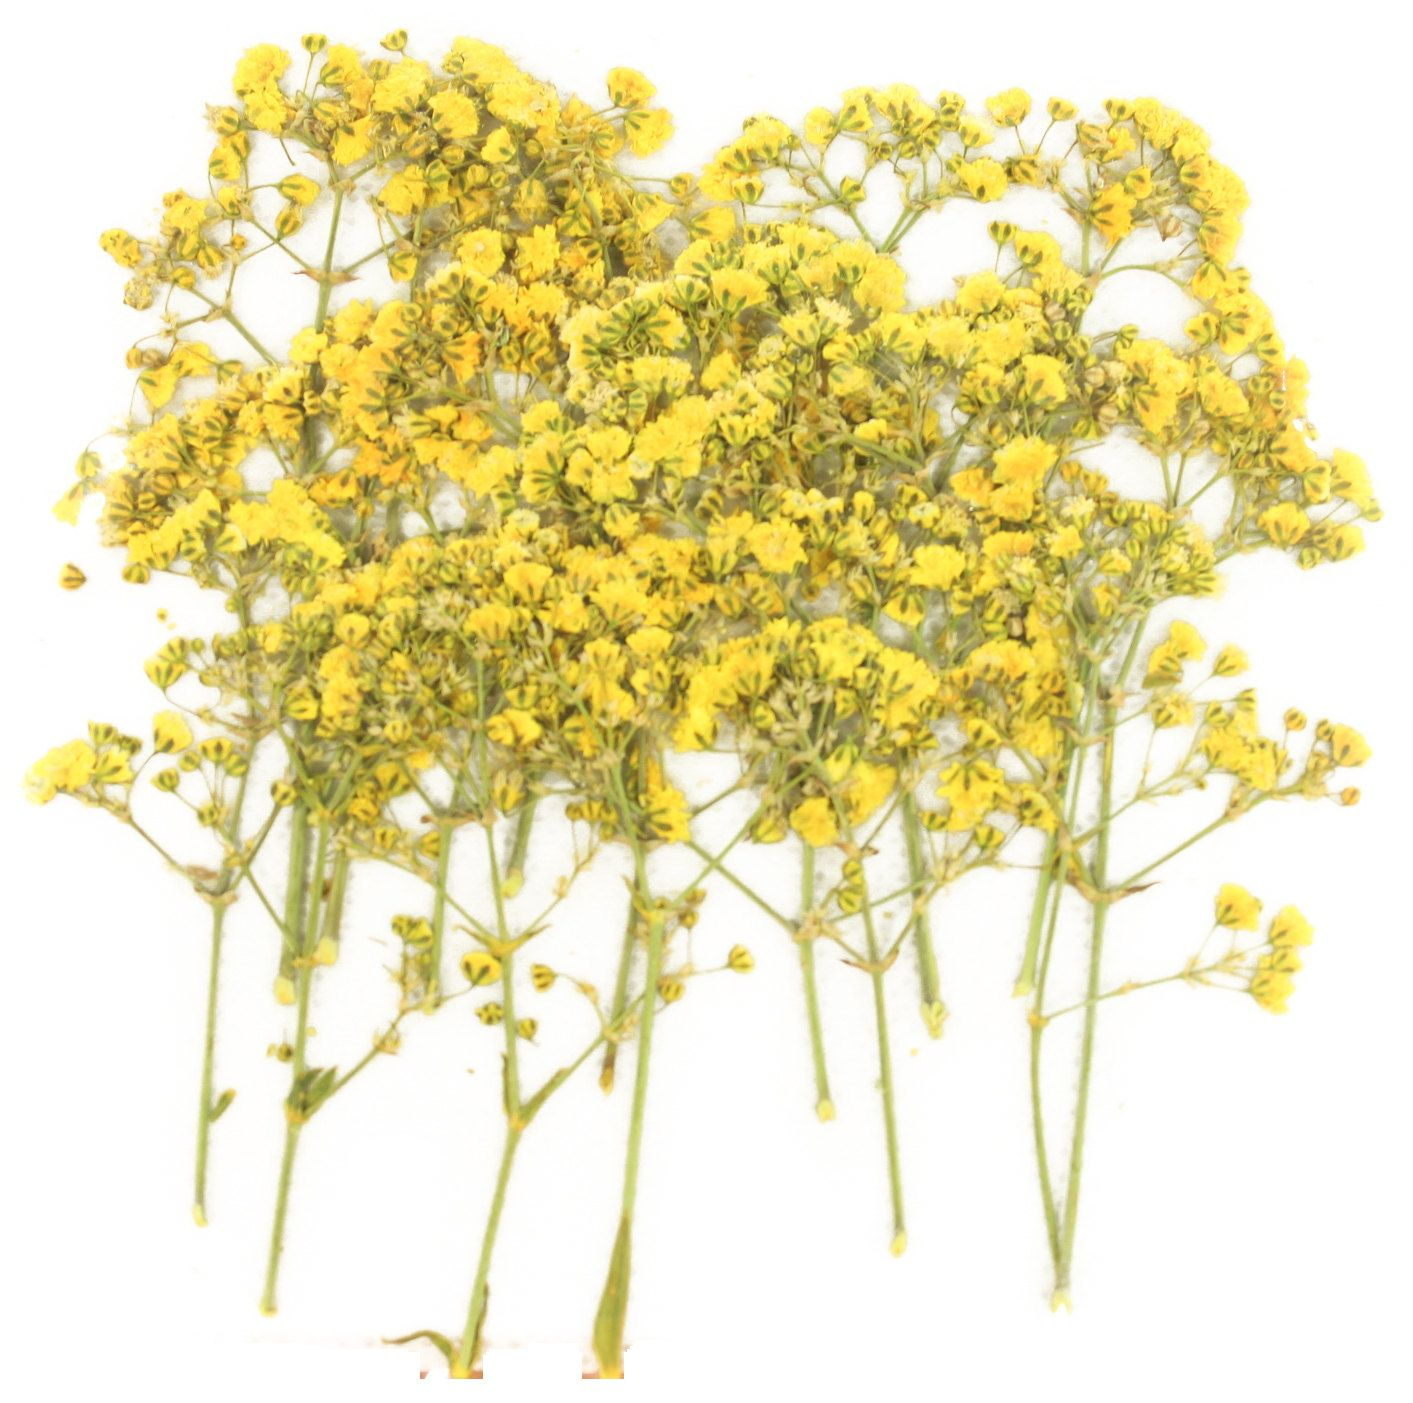 How to scrapbook pressed flowers - Pressed Flowers Yellow Baby Breath Gypsophila 20pcs For Floral Art Craft Card Making Scrapbooking